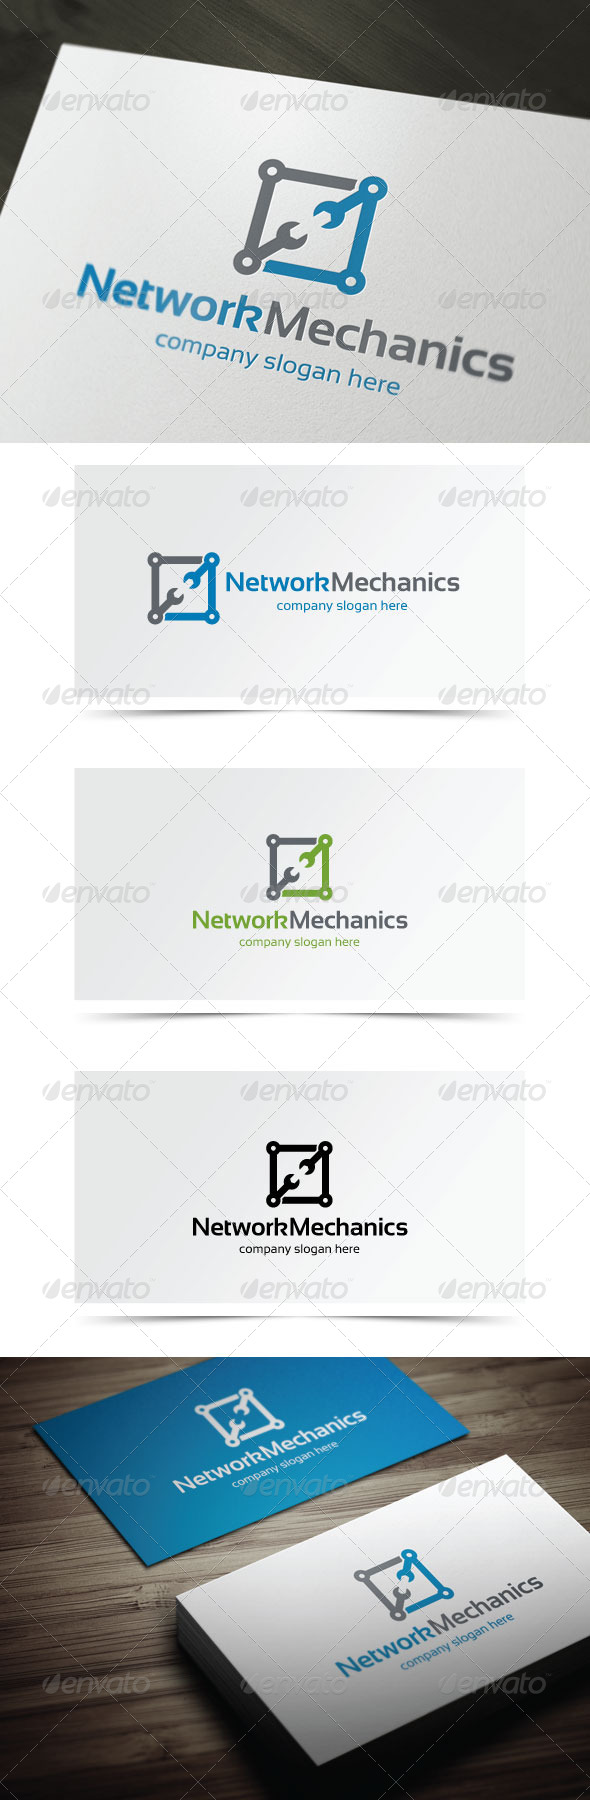 GraphicRiver Network Mechanics 5741831